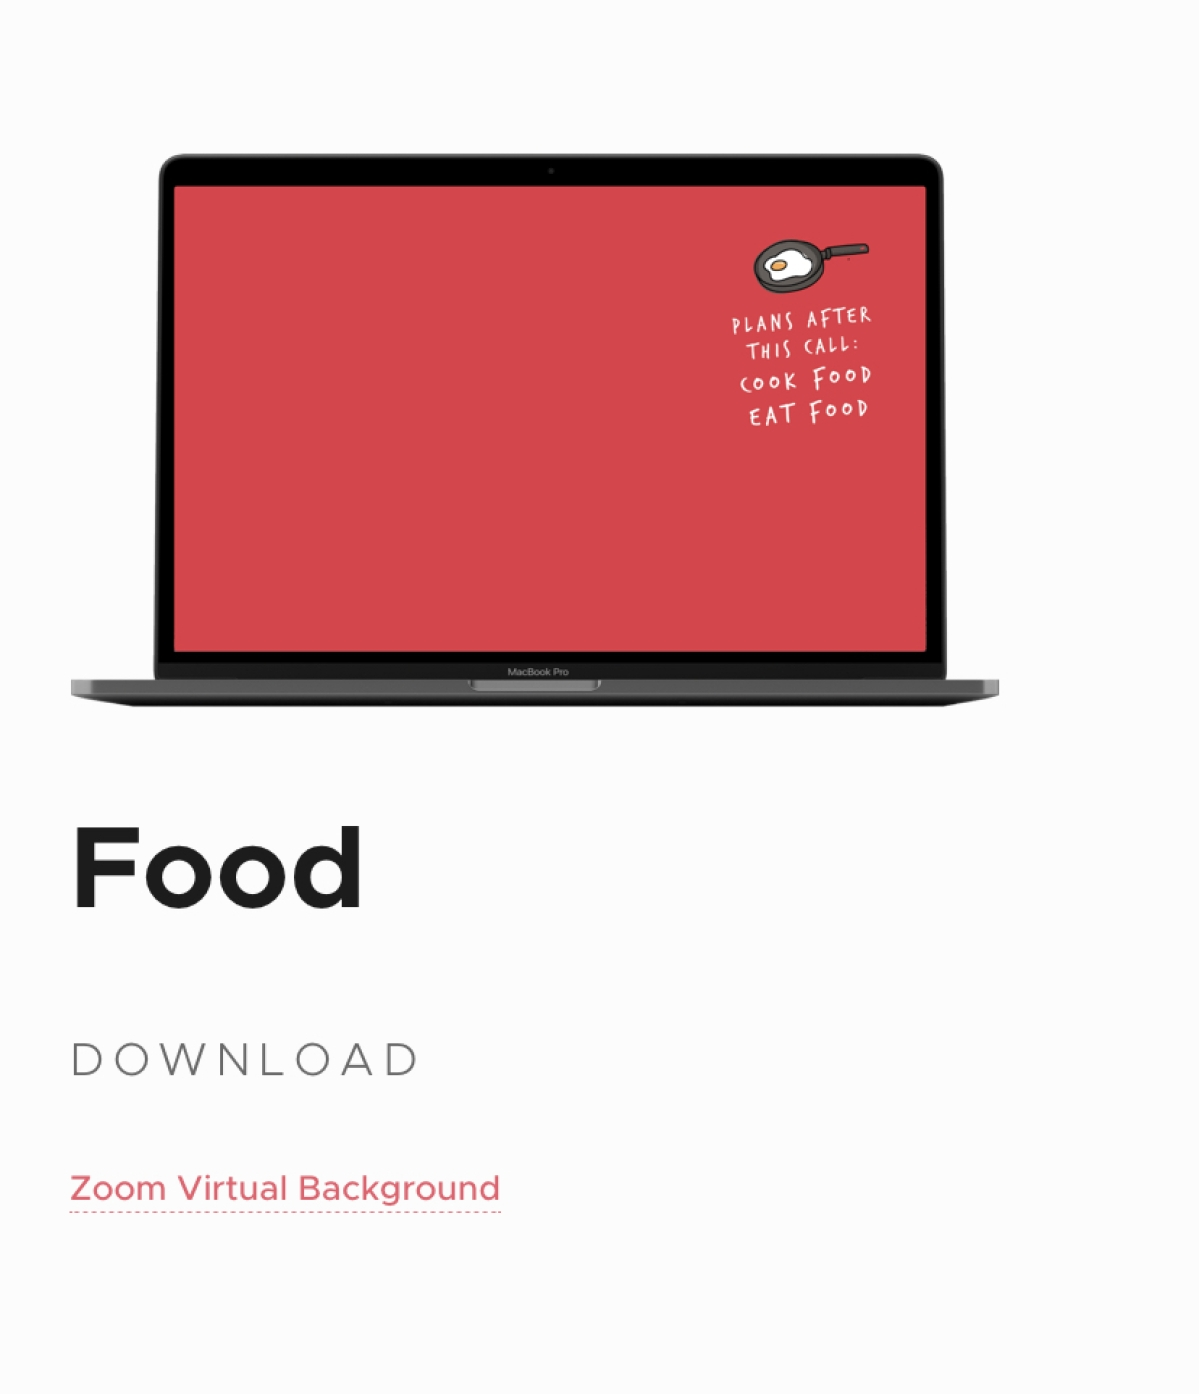 Zomato offers creative Zoom virtual backgrounds to spice up video calls